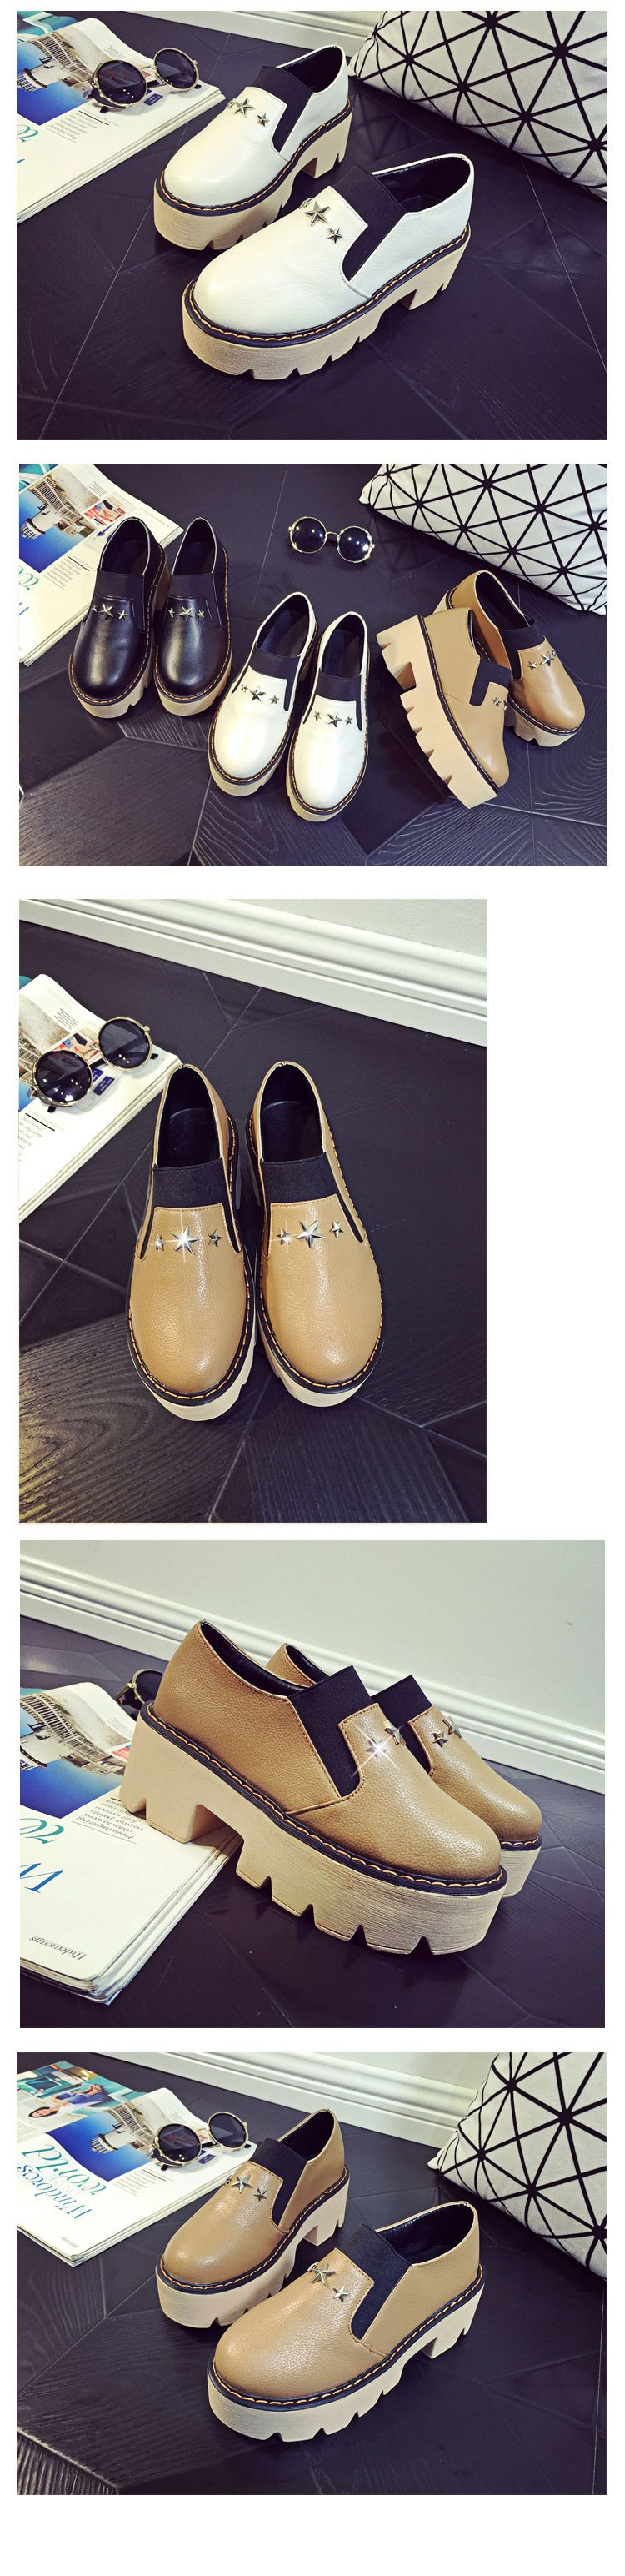 New Spring Fashion Style Hot Women Casual Shoes Brown Black White Thick Soled Loafers Flat Shoes a Pedal Lazy Women Shoes ZM3.5